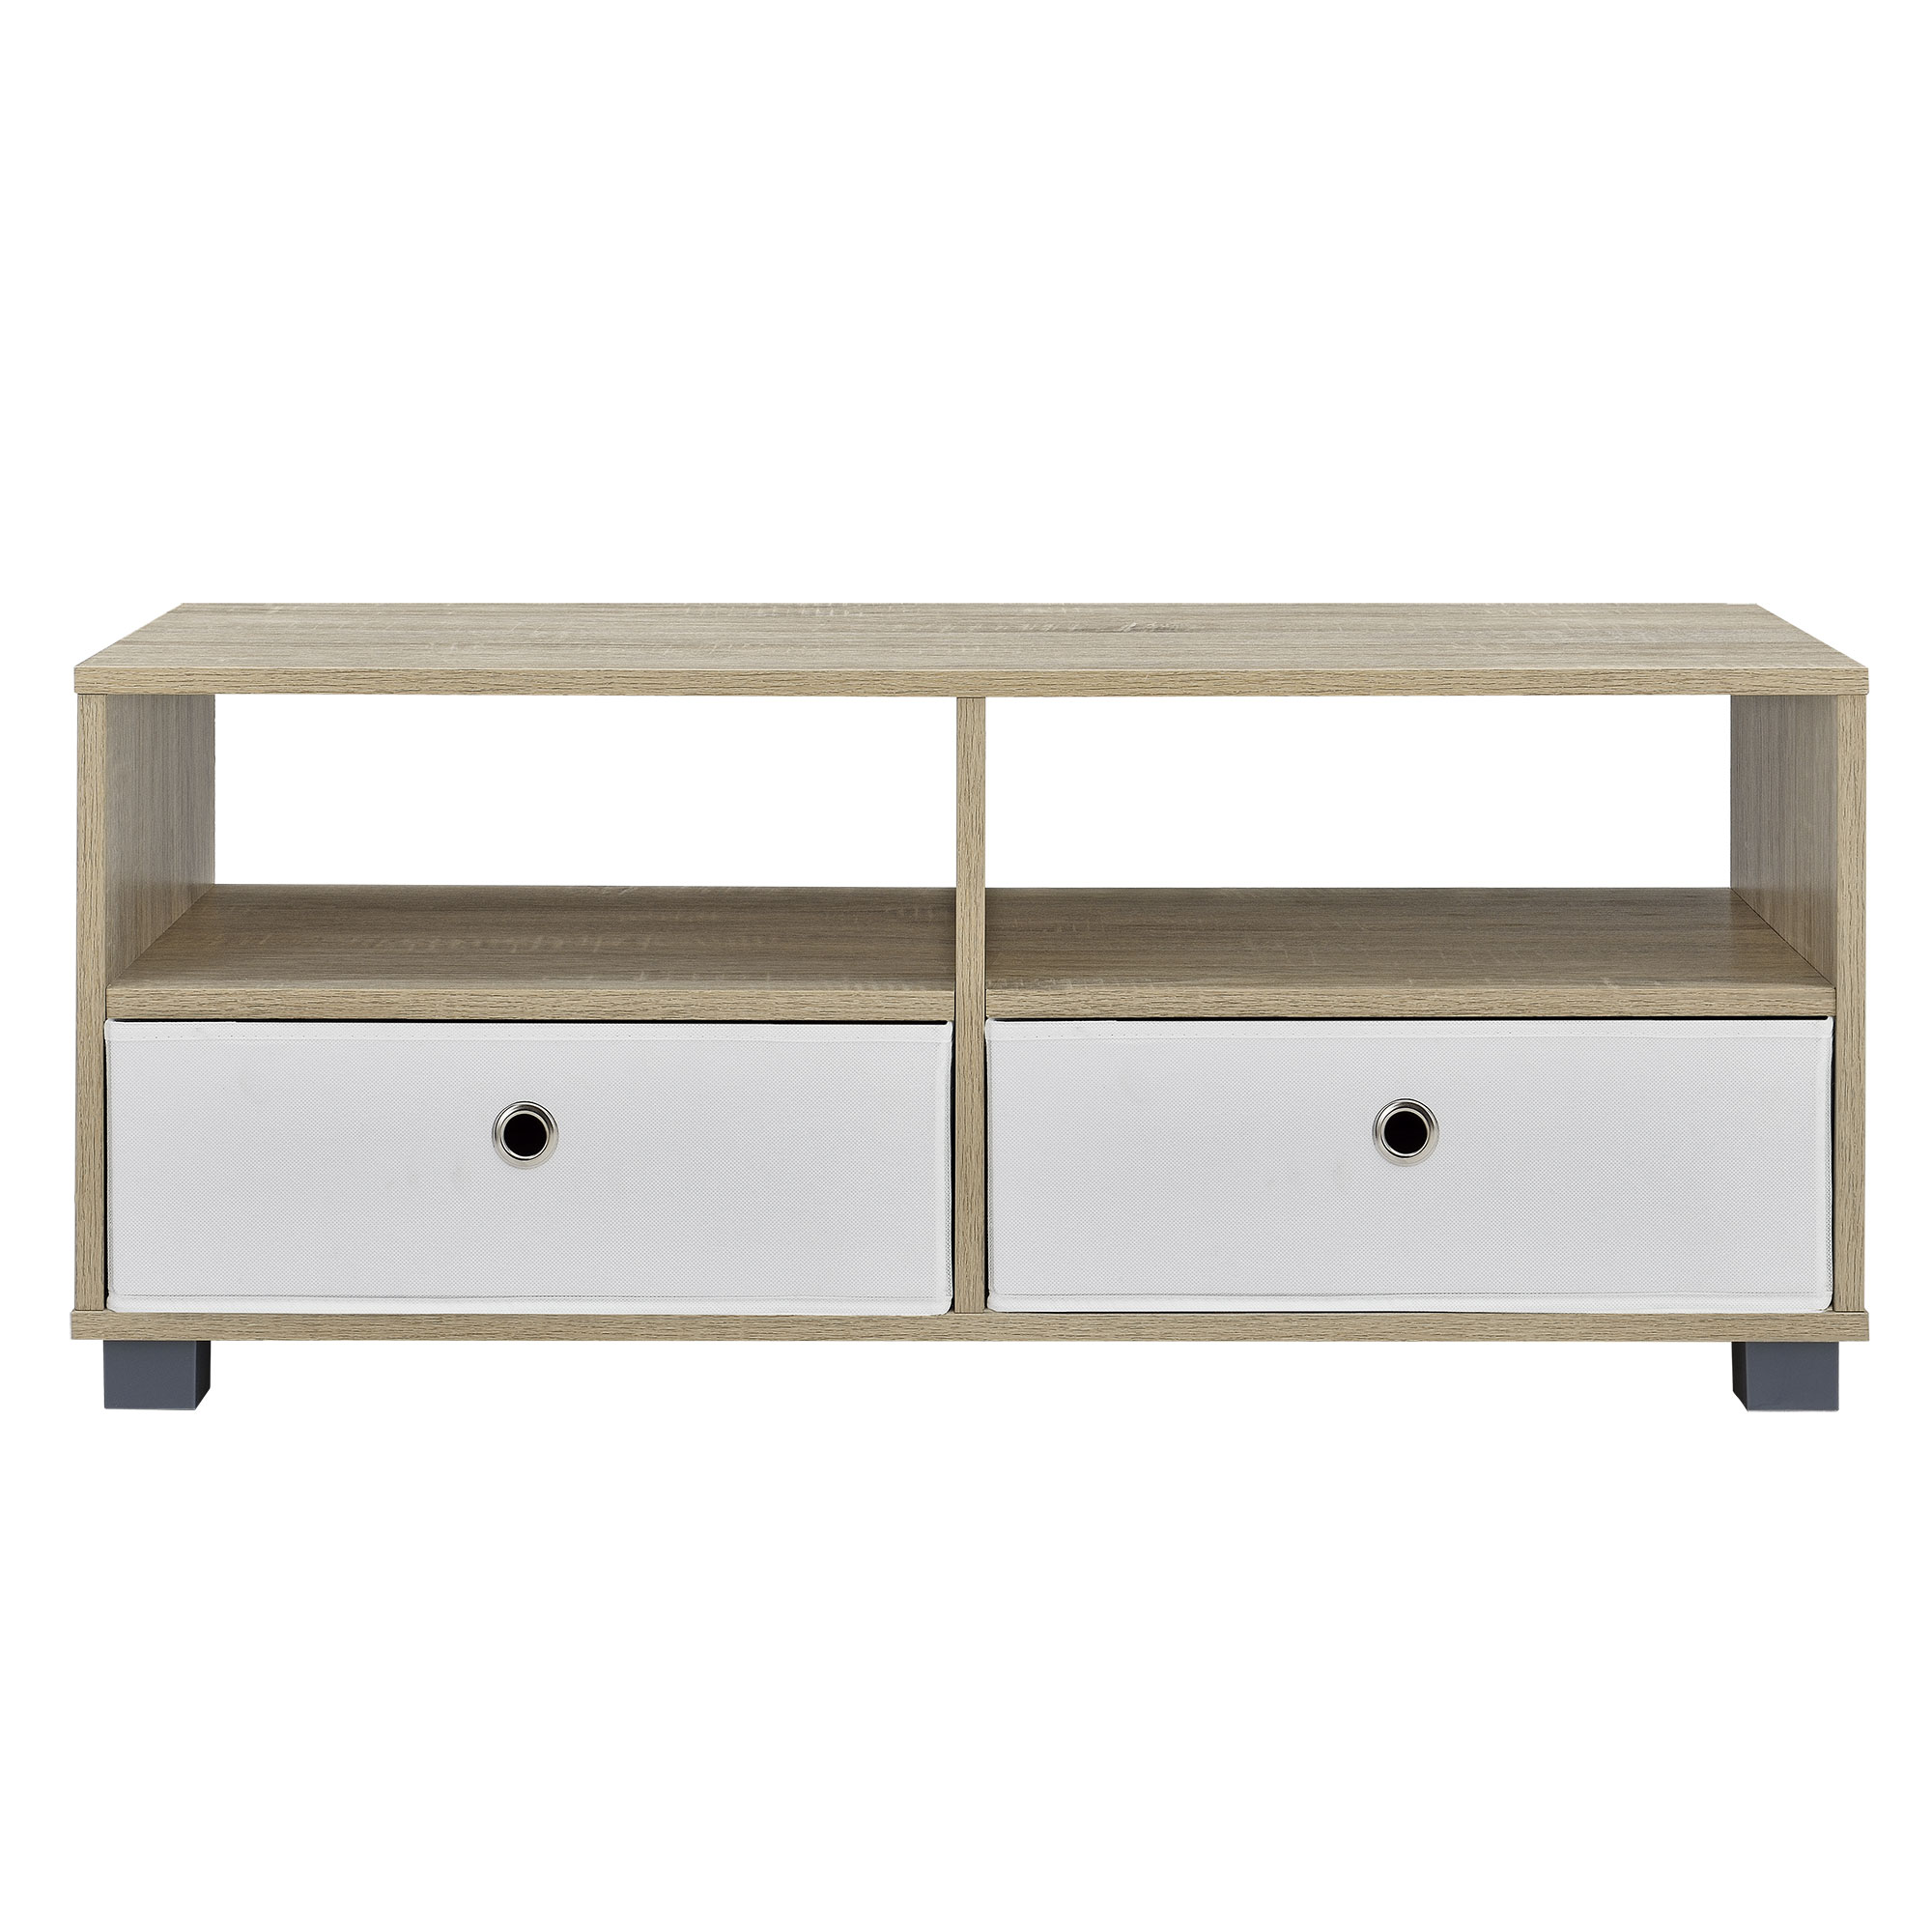 Tv lowboard channel living room table wooden for Sideboard lowboard